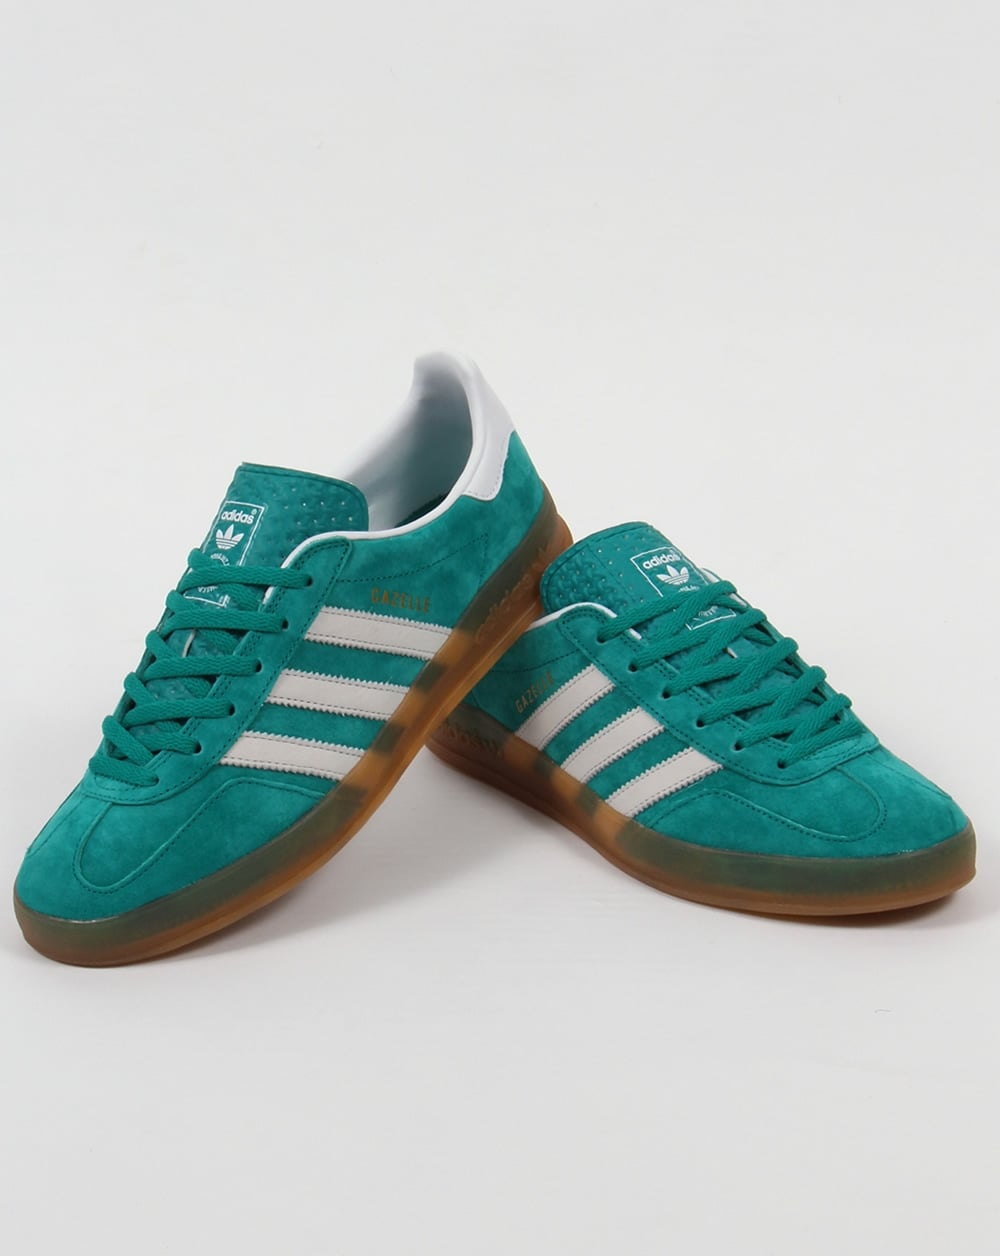 Adidas Originals Gazelle Indoor Shoes - Dark Green/Black